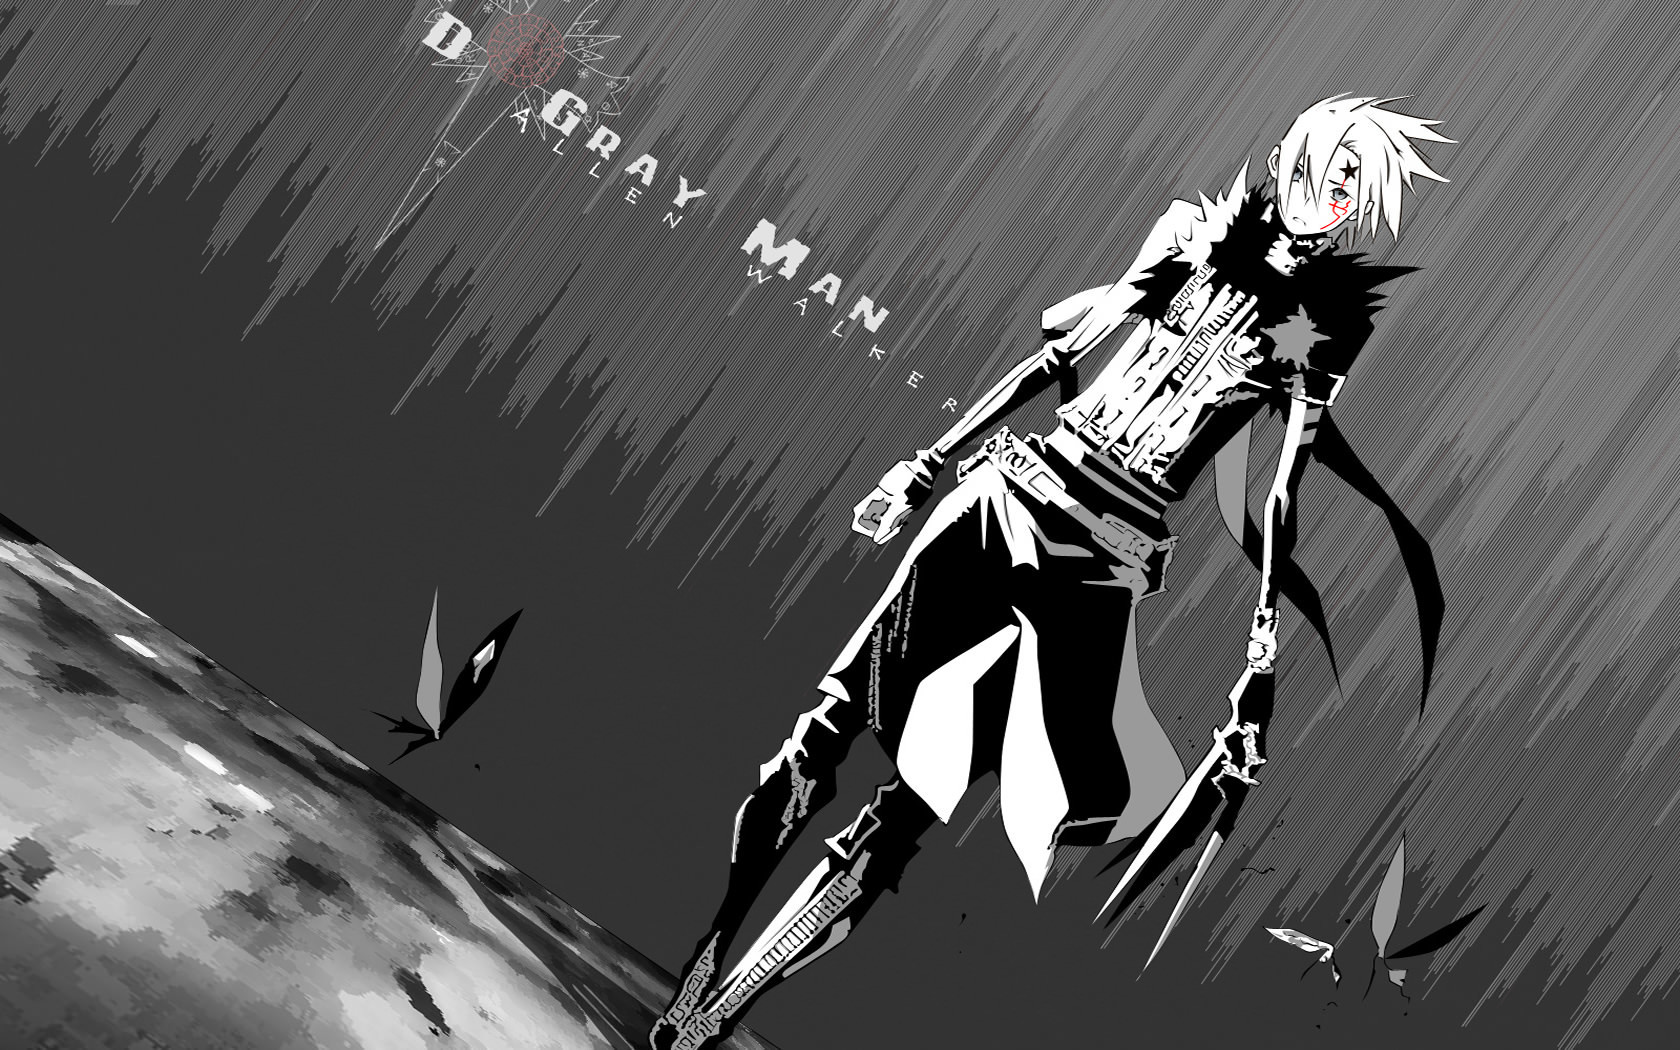 D gray man wallpaper naver - D gray man images ...